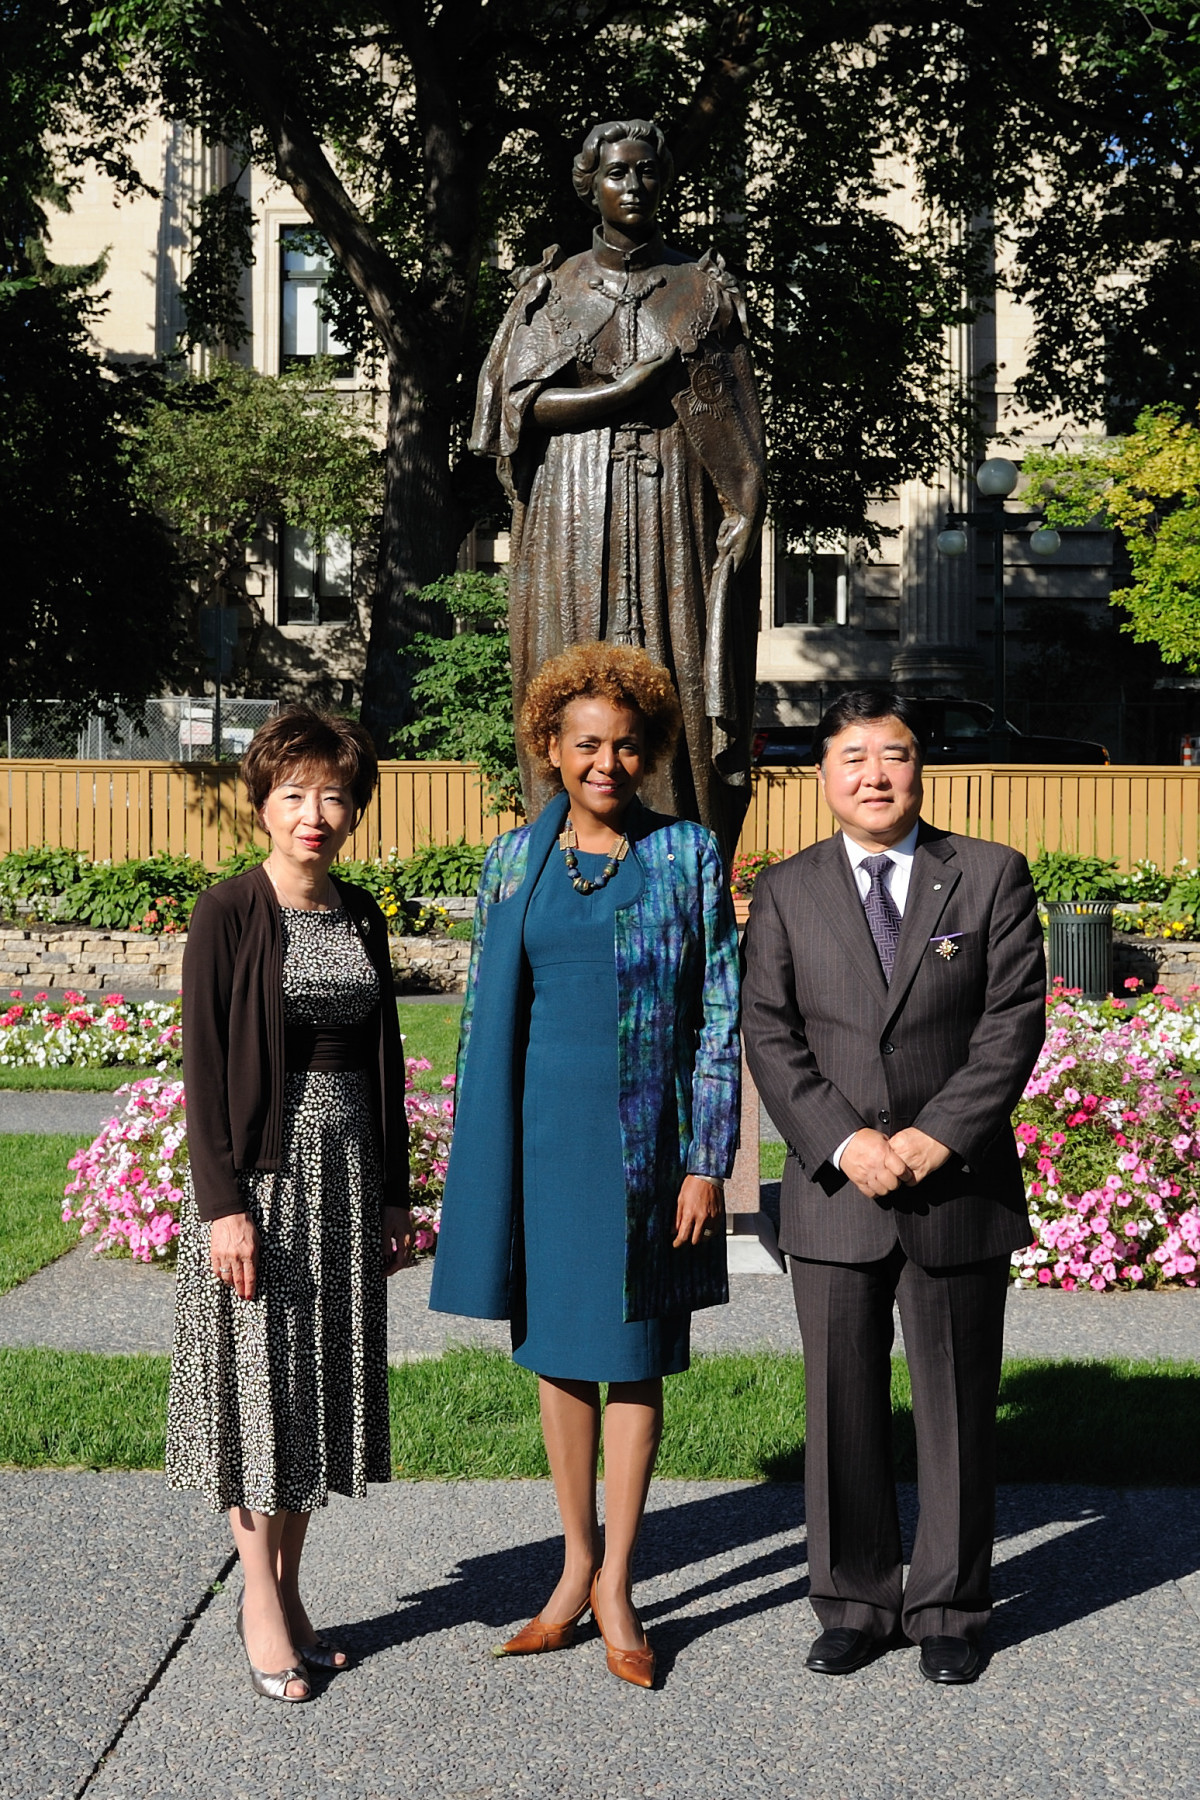 The Governor General with the Lieutenant Governor and his spouse in the gardens in front of a statue of Her Majesty Queen Elizabeth II.